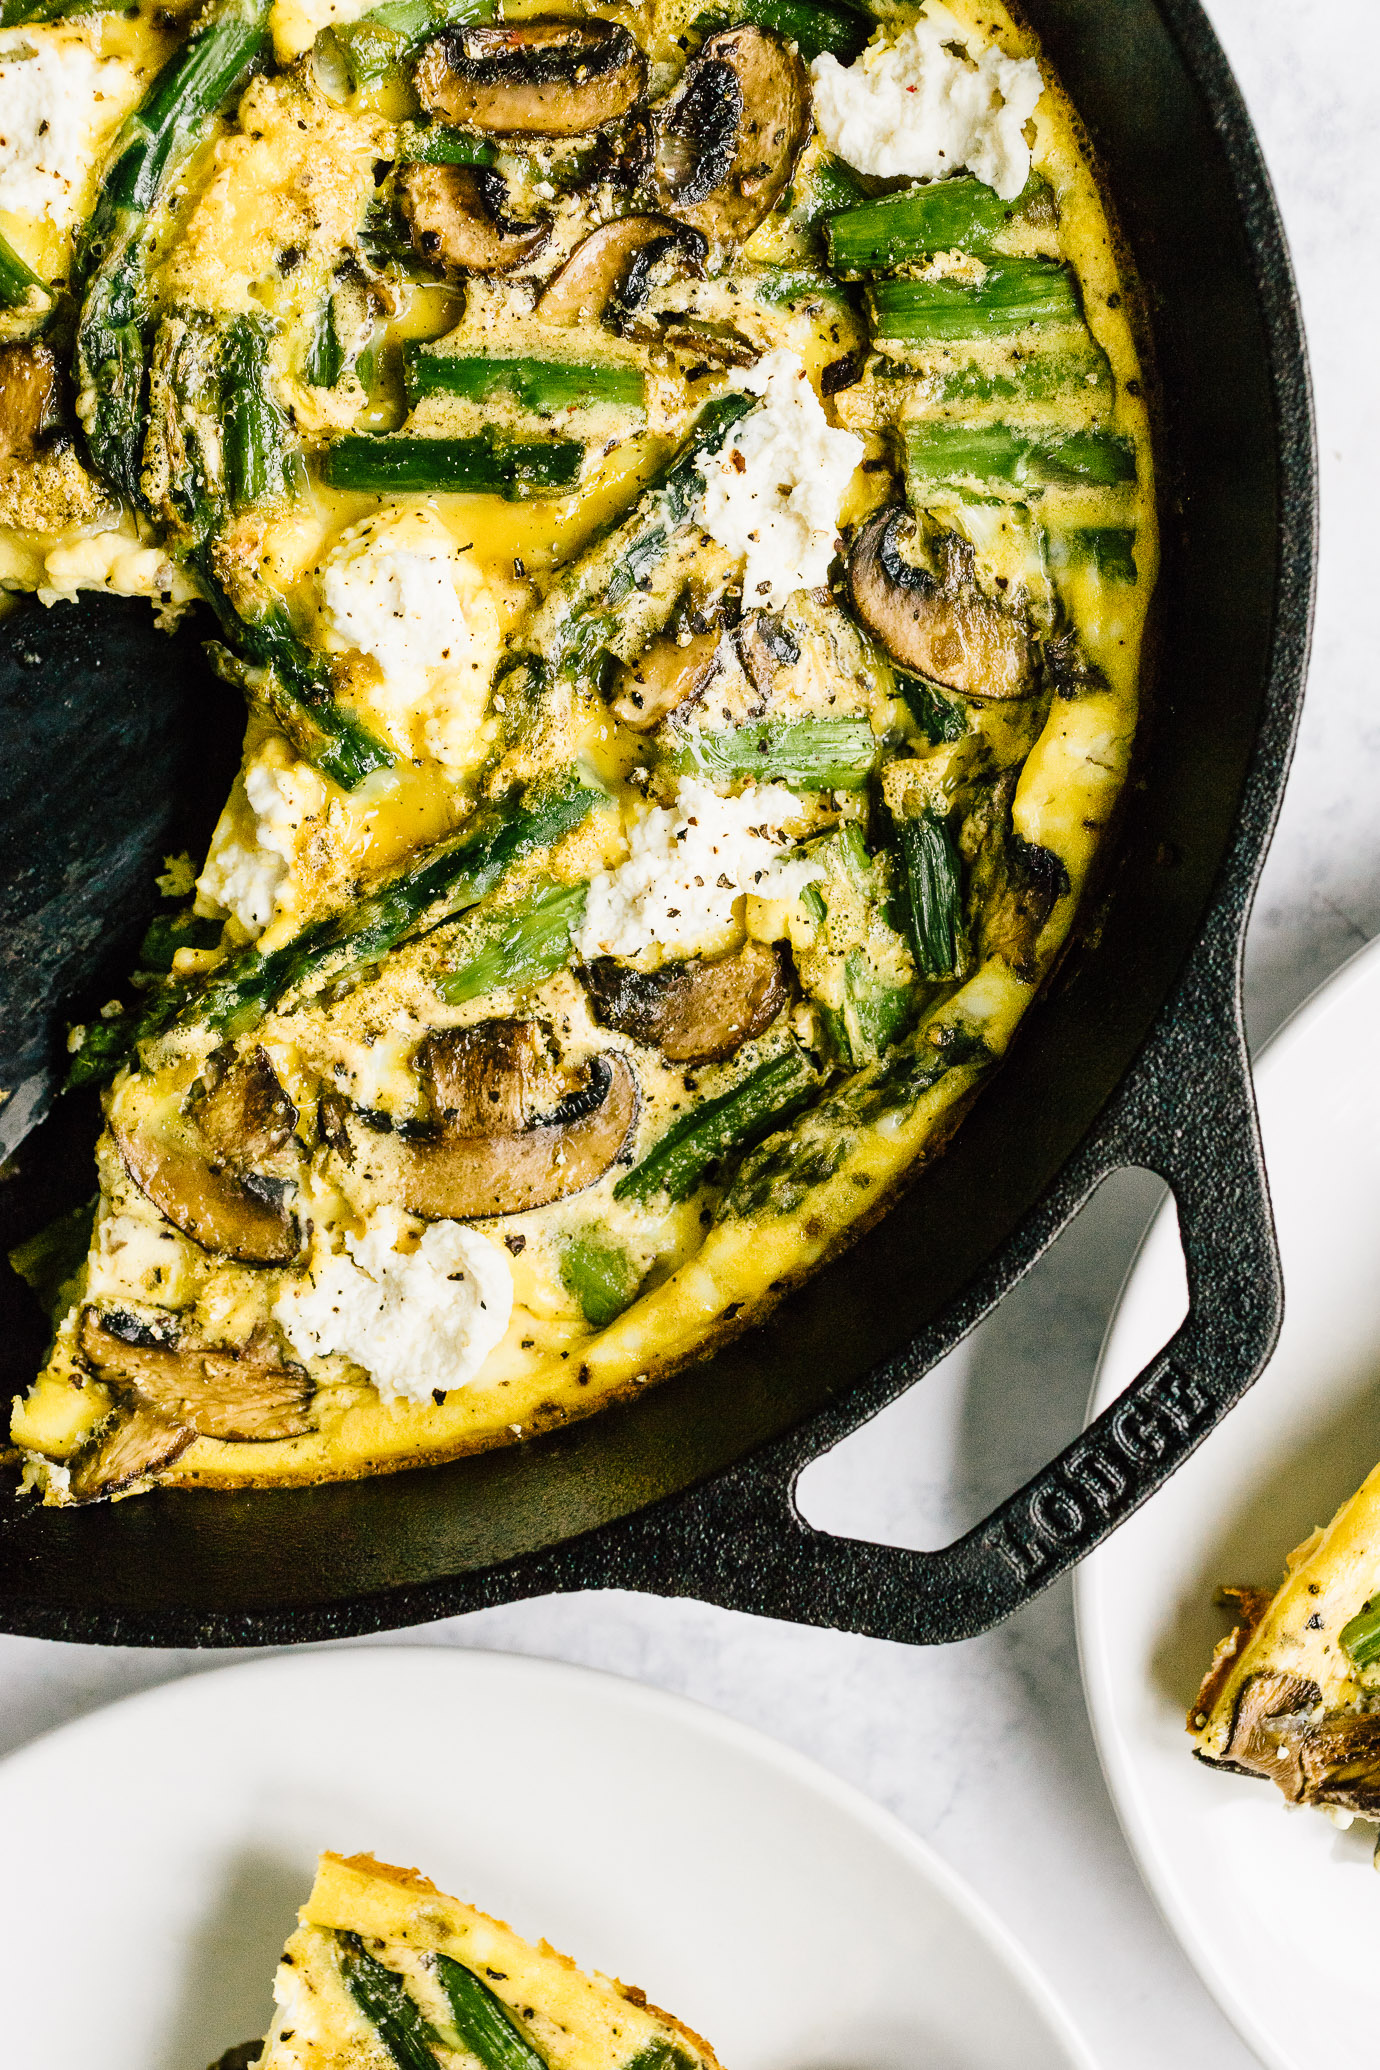 Slice of asparagus mushroom frittata and cast iron skillet